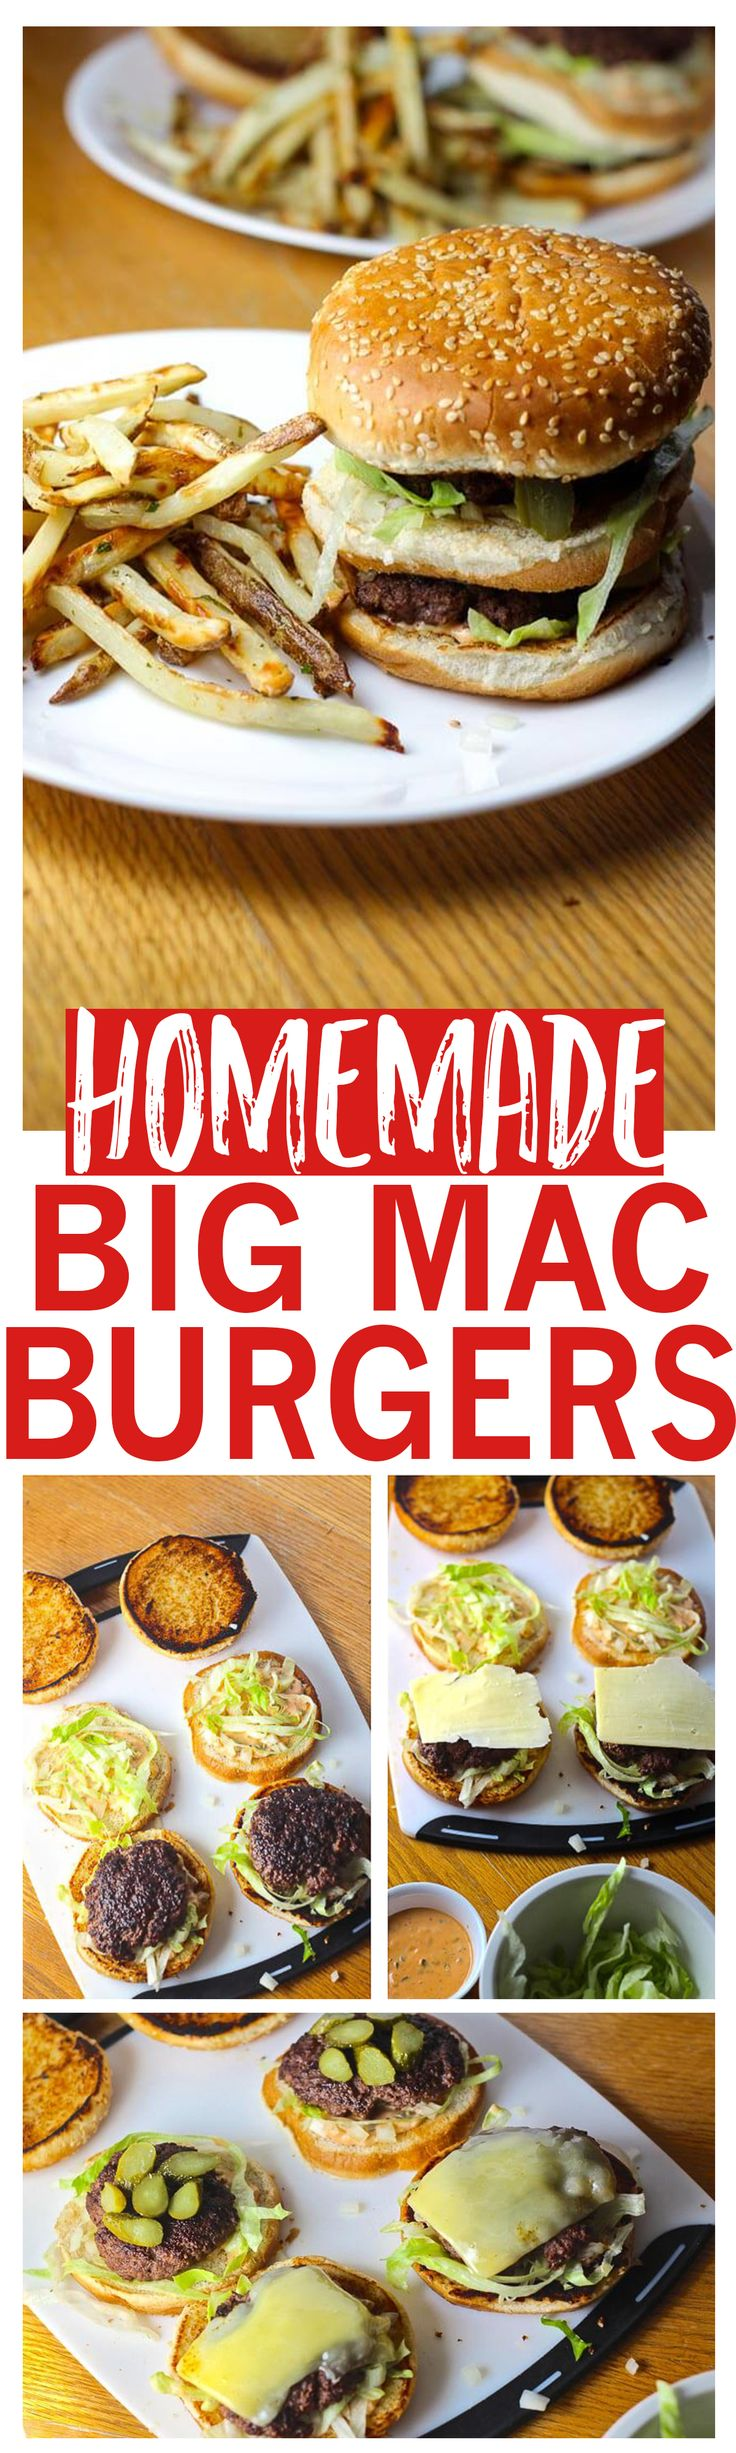 This McDonalds-style Big Mac recipe comes complete with sesame seed buns, juicy hamburger patties, sharp cheddar cheese, pickles and Big Mac sauce!